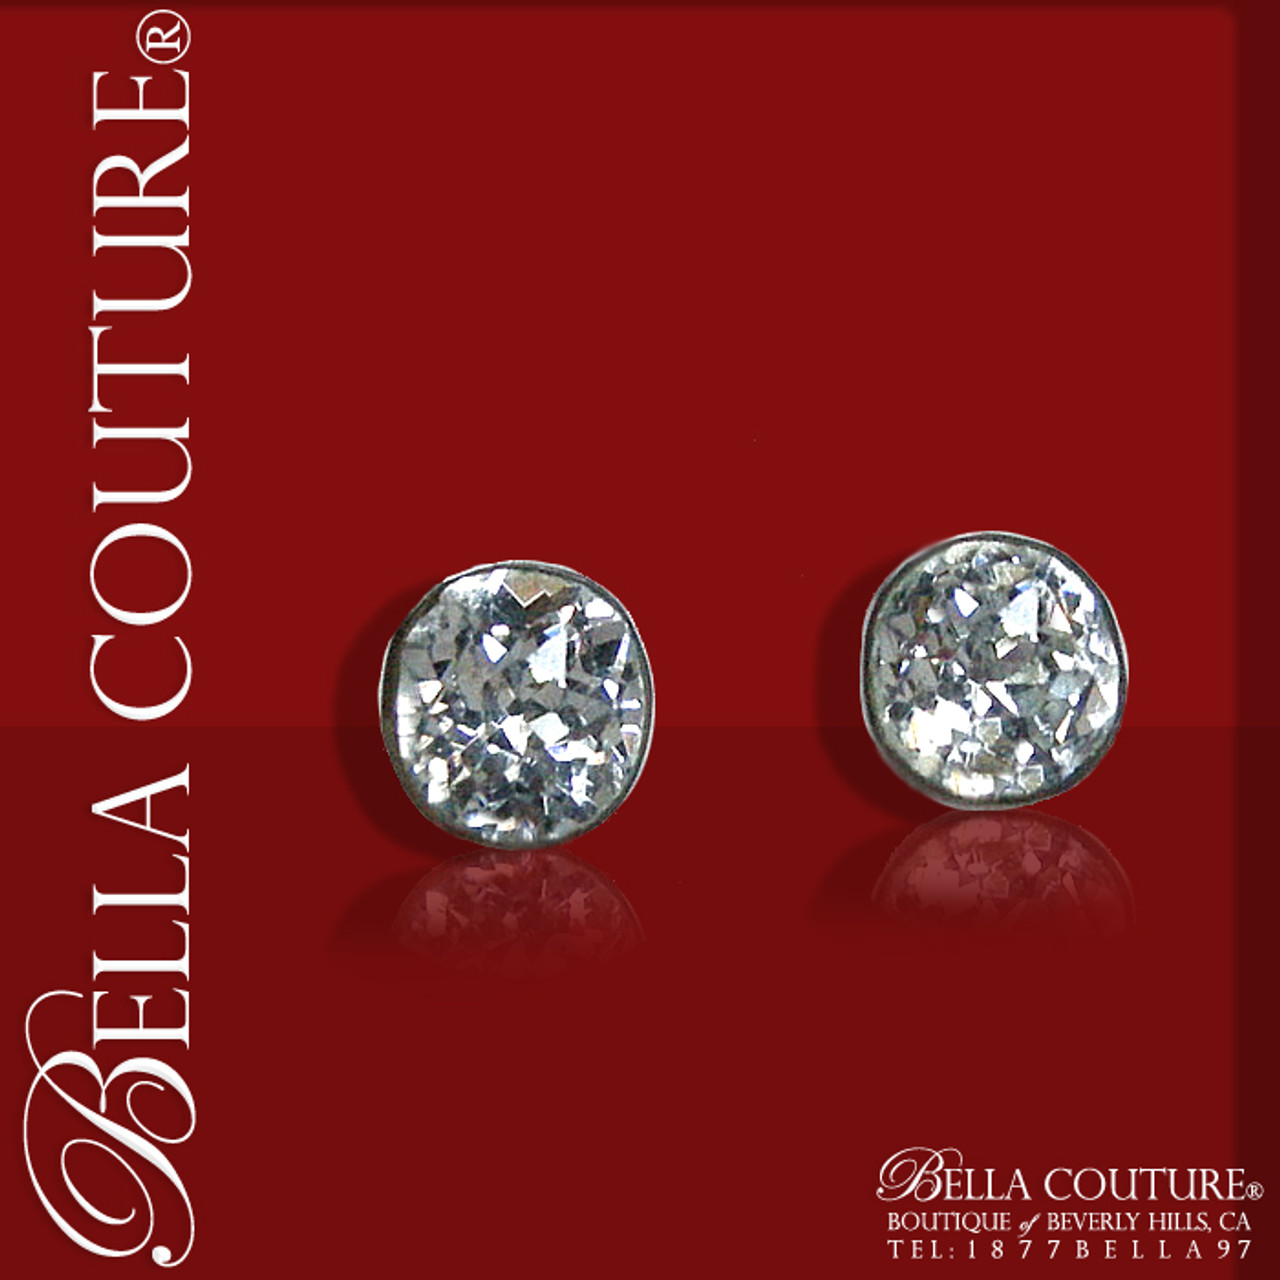 Bella Couture Gorgeous Rare Antique Victorian Mine Cut Faceted Diamond Shaped Rock Crystal Solitaire Studs Sterling Earrings